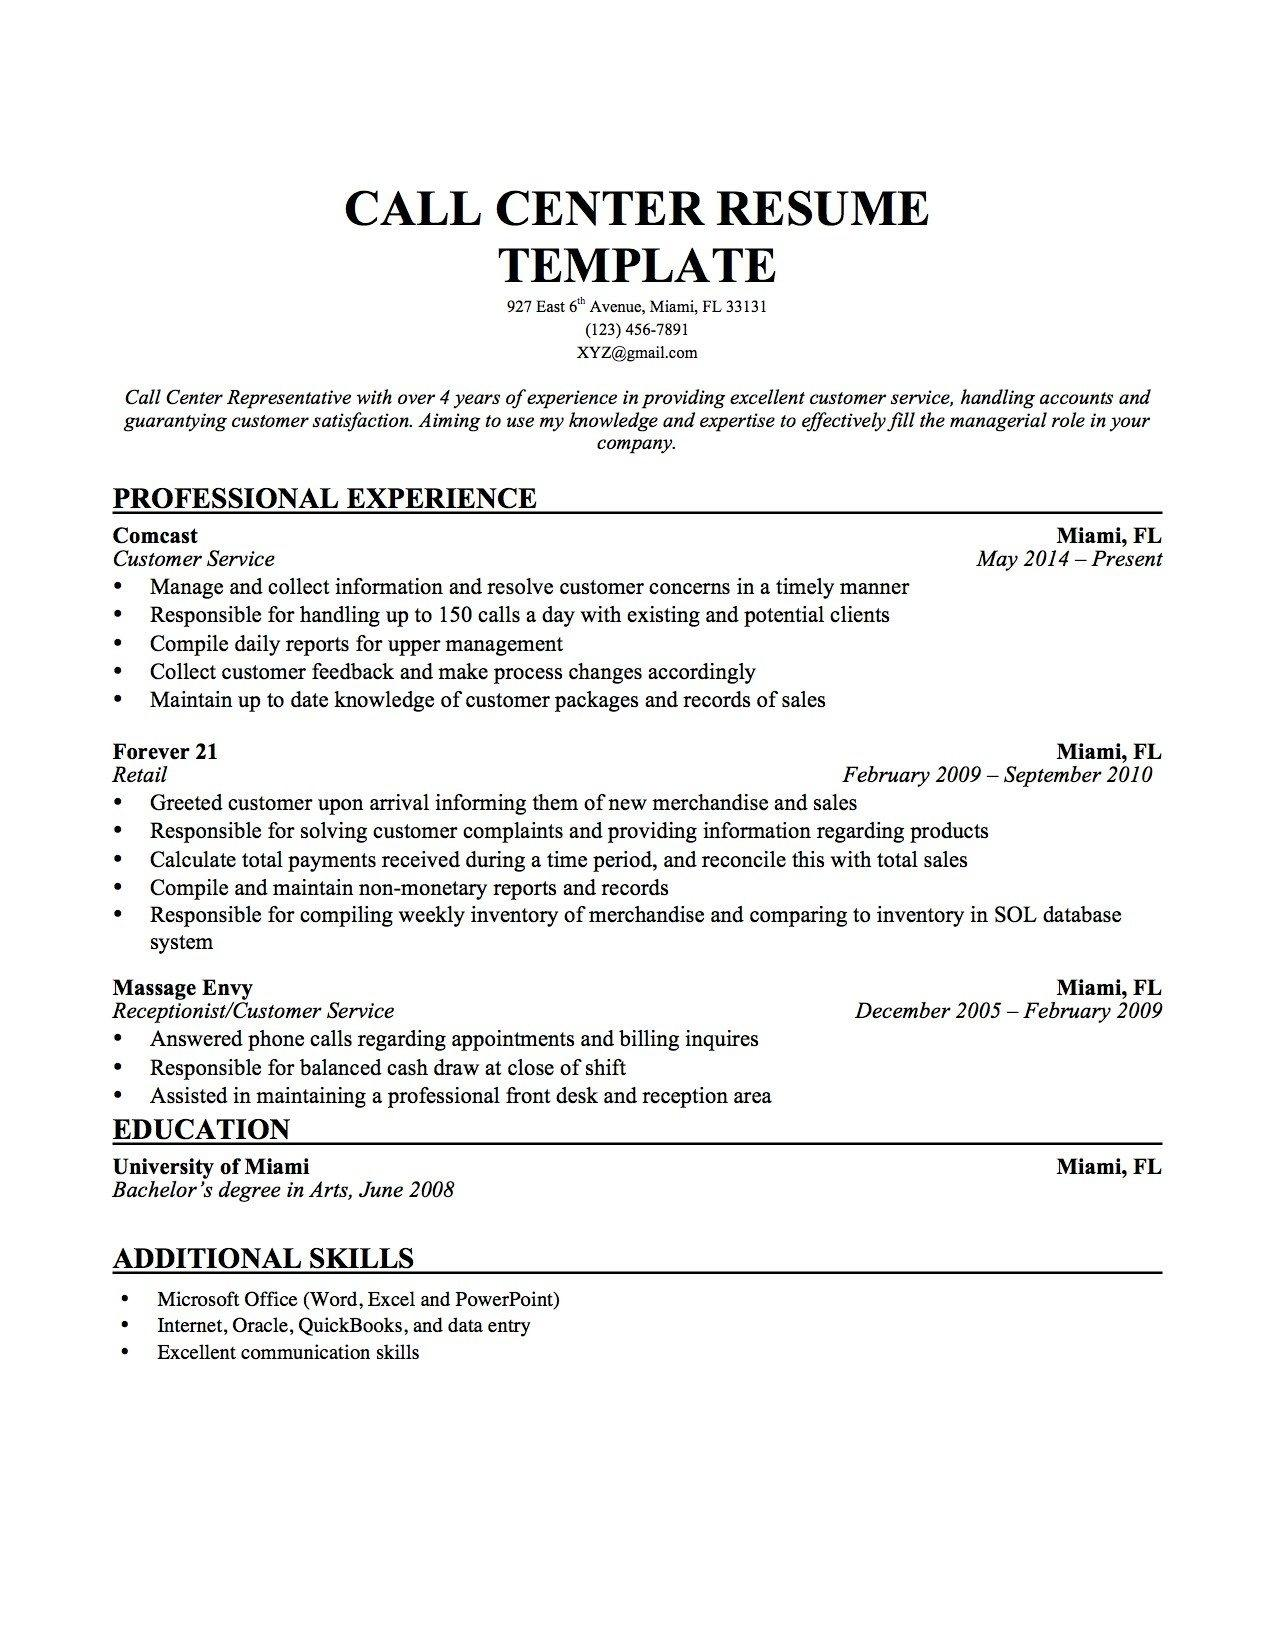 Call Center Representative Resume Templates